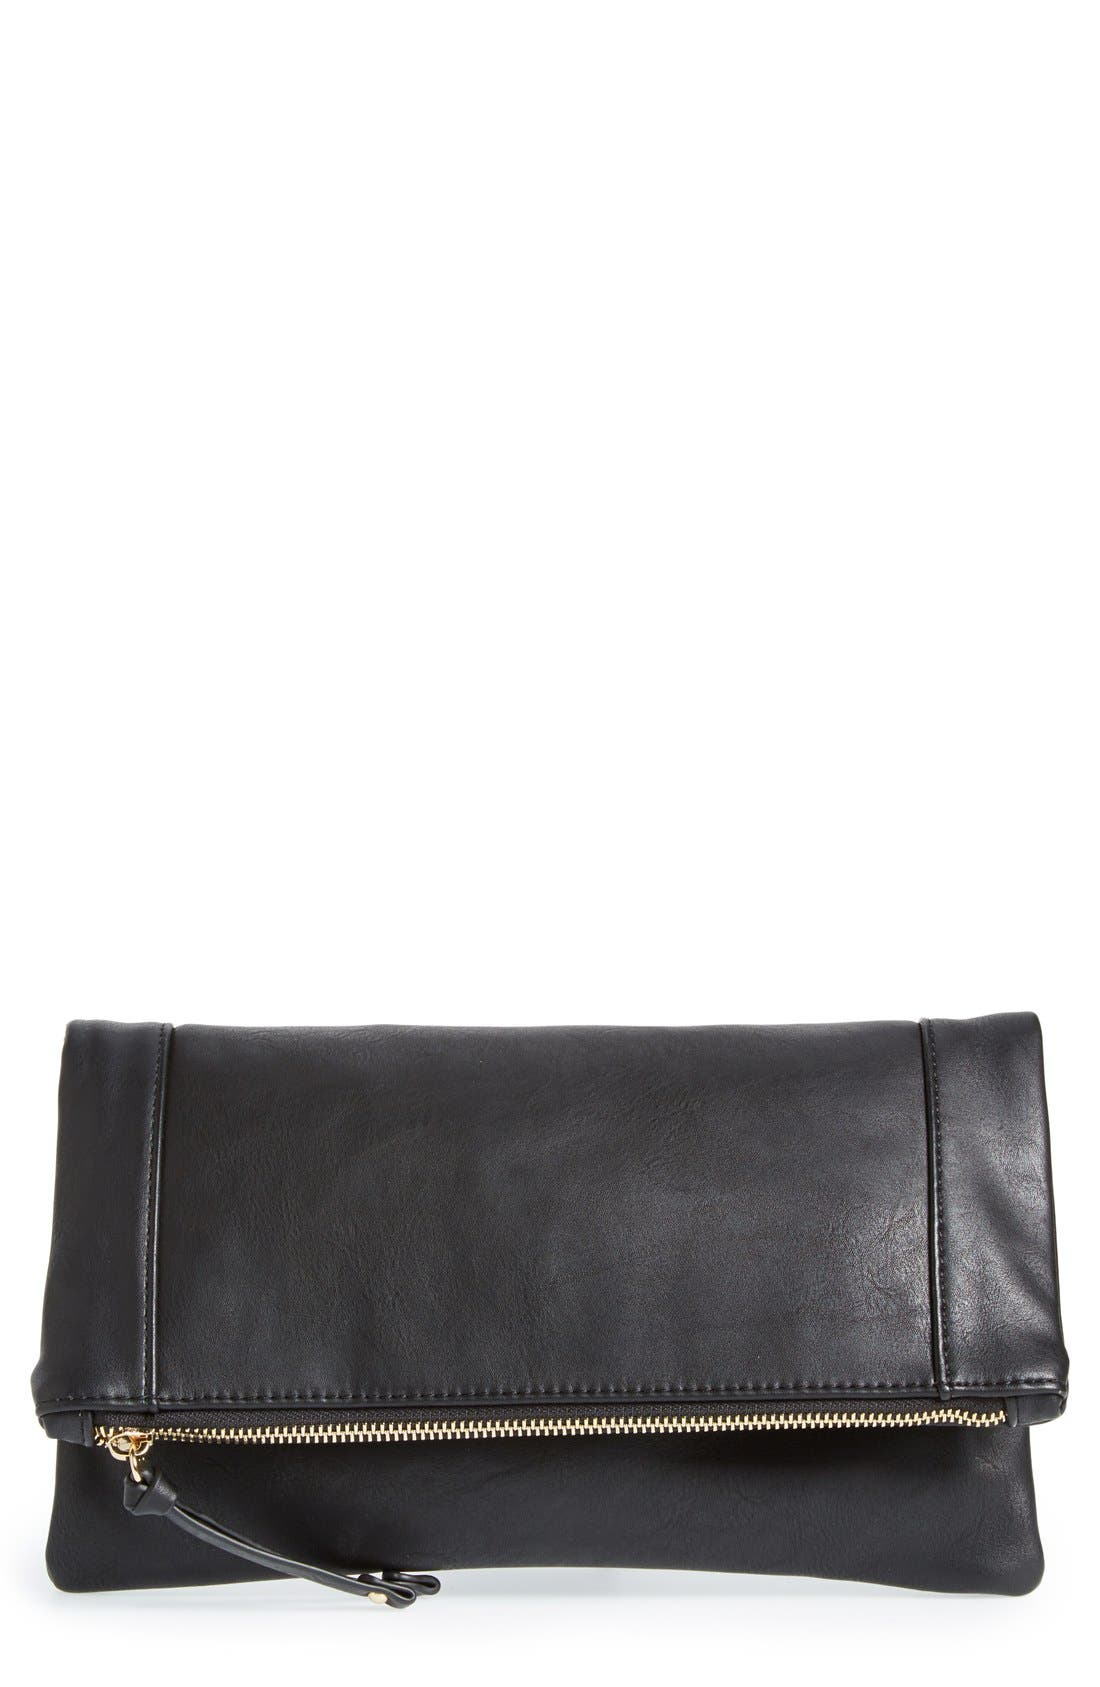 SOLE SOCIETY, Marlena Faux Leather Foldover Clutch, Main thumbnail 1, color, JET BLACK